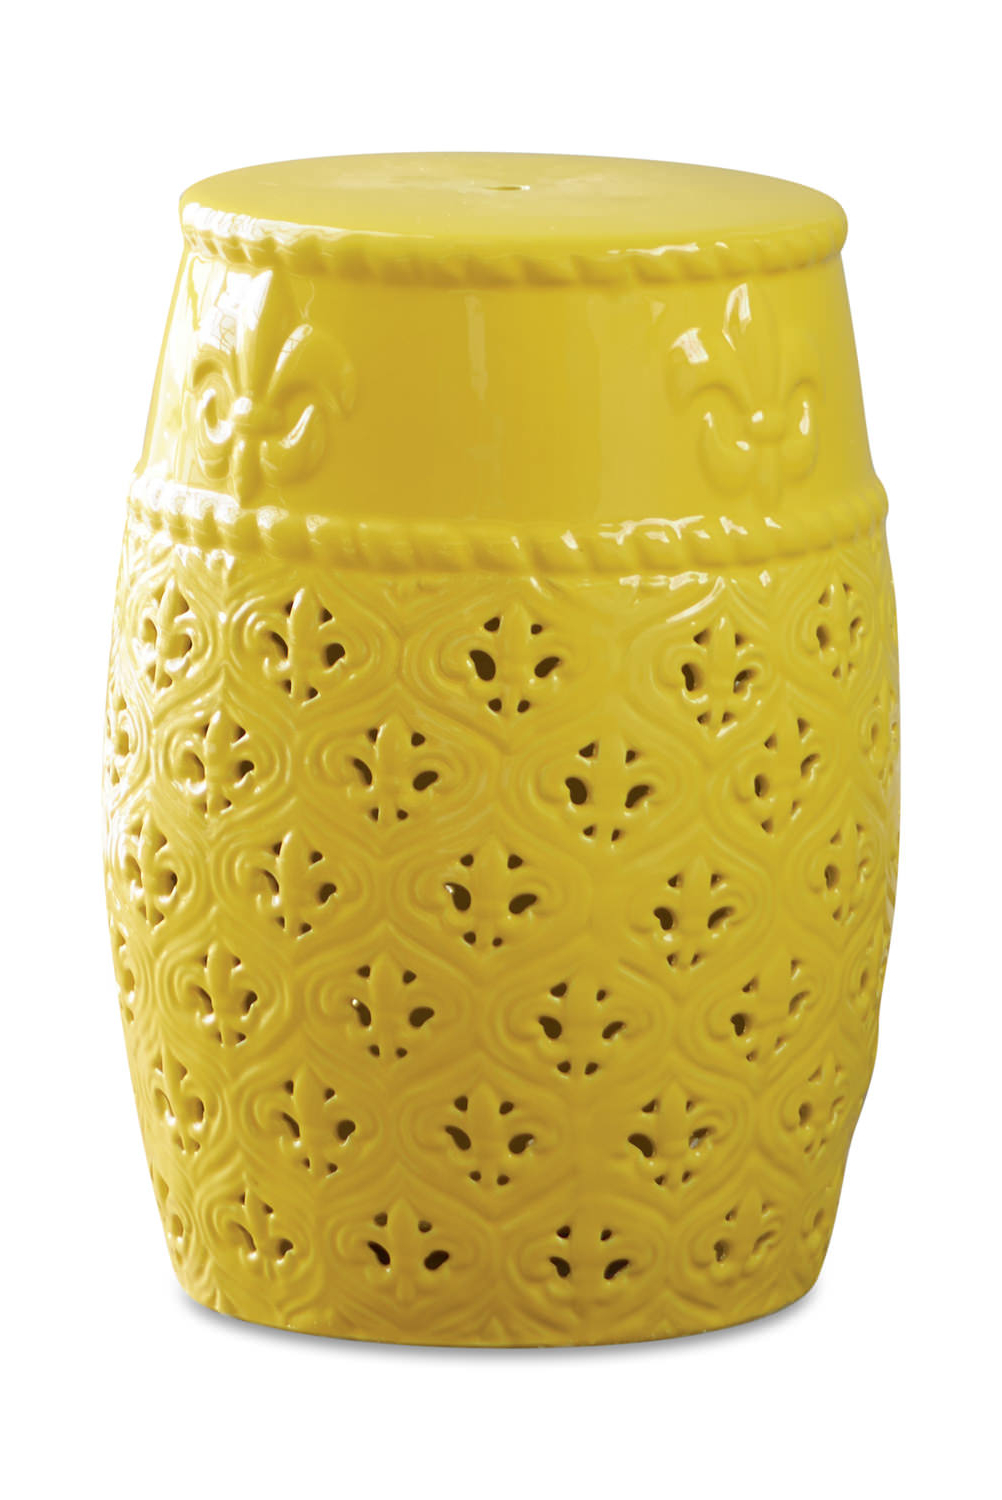 Yellow Ceramic Garden Stool With Regard To Most Up To Date Ceramic Garden Stools (View 4 of 30)